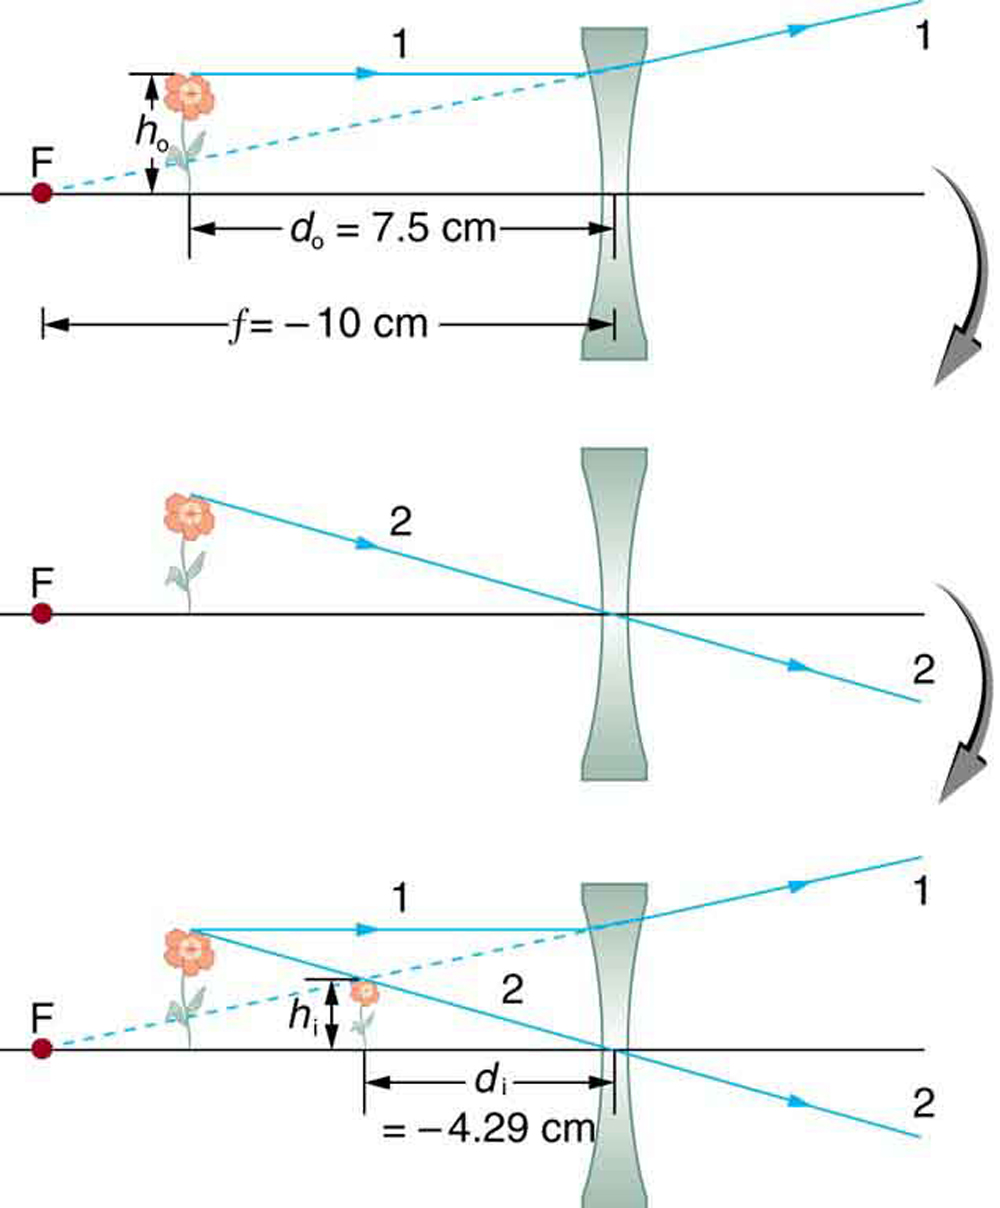 Figure (a) shows an upright object placed at d sub o equals seven point five cm and in front of a concave lens of on its left side. Parallel ray 1 falls on the lens and gets refracted and dotted backwards to pass through point F on the left side. Figure (b) shows ray 2 going straight through the center of the lens. Figure (c) combines both figures (a) and (b) and the dotted line and the solid line meet at a point on the left side of the lens forming a virtual image which is erect and diminished. Here h sub o is the height of the object above the axis and h sub i is the height of the image above the axis. The distance from the center to the image is d sub i equals 4.29 cm.